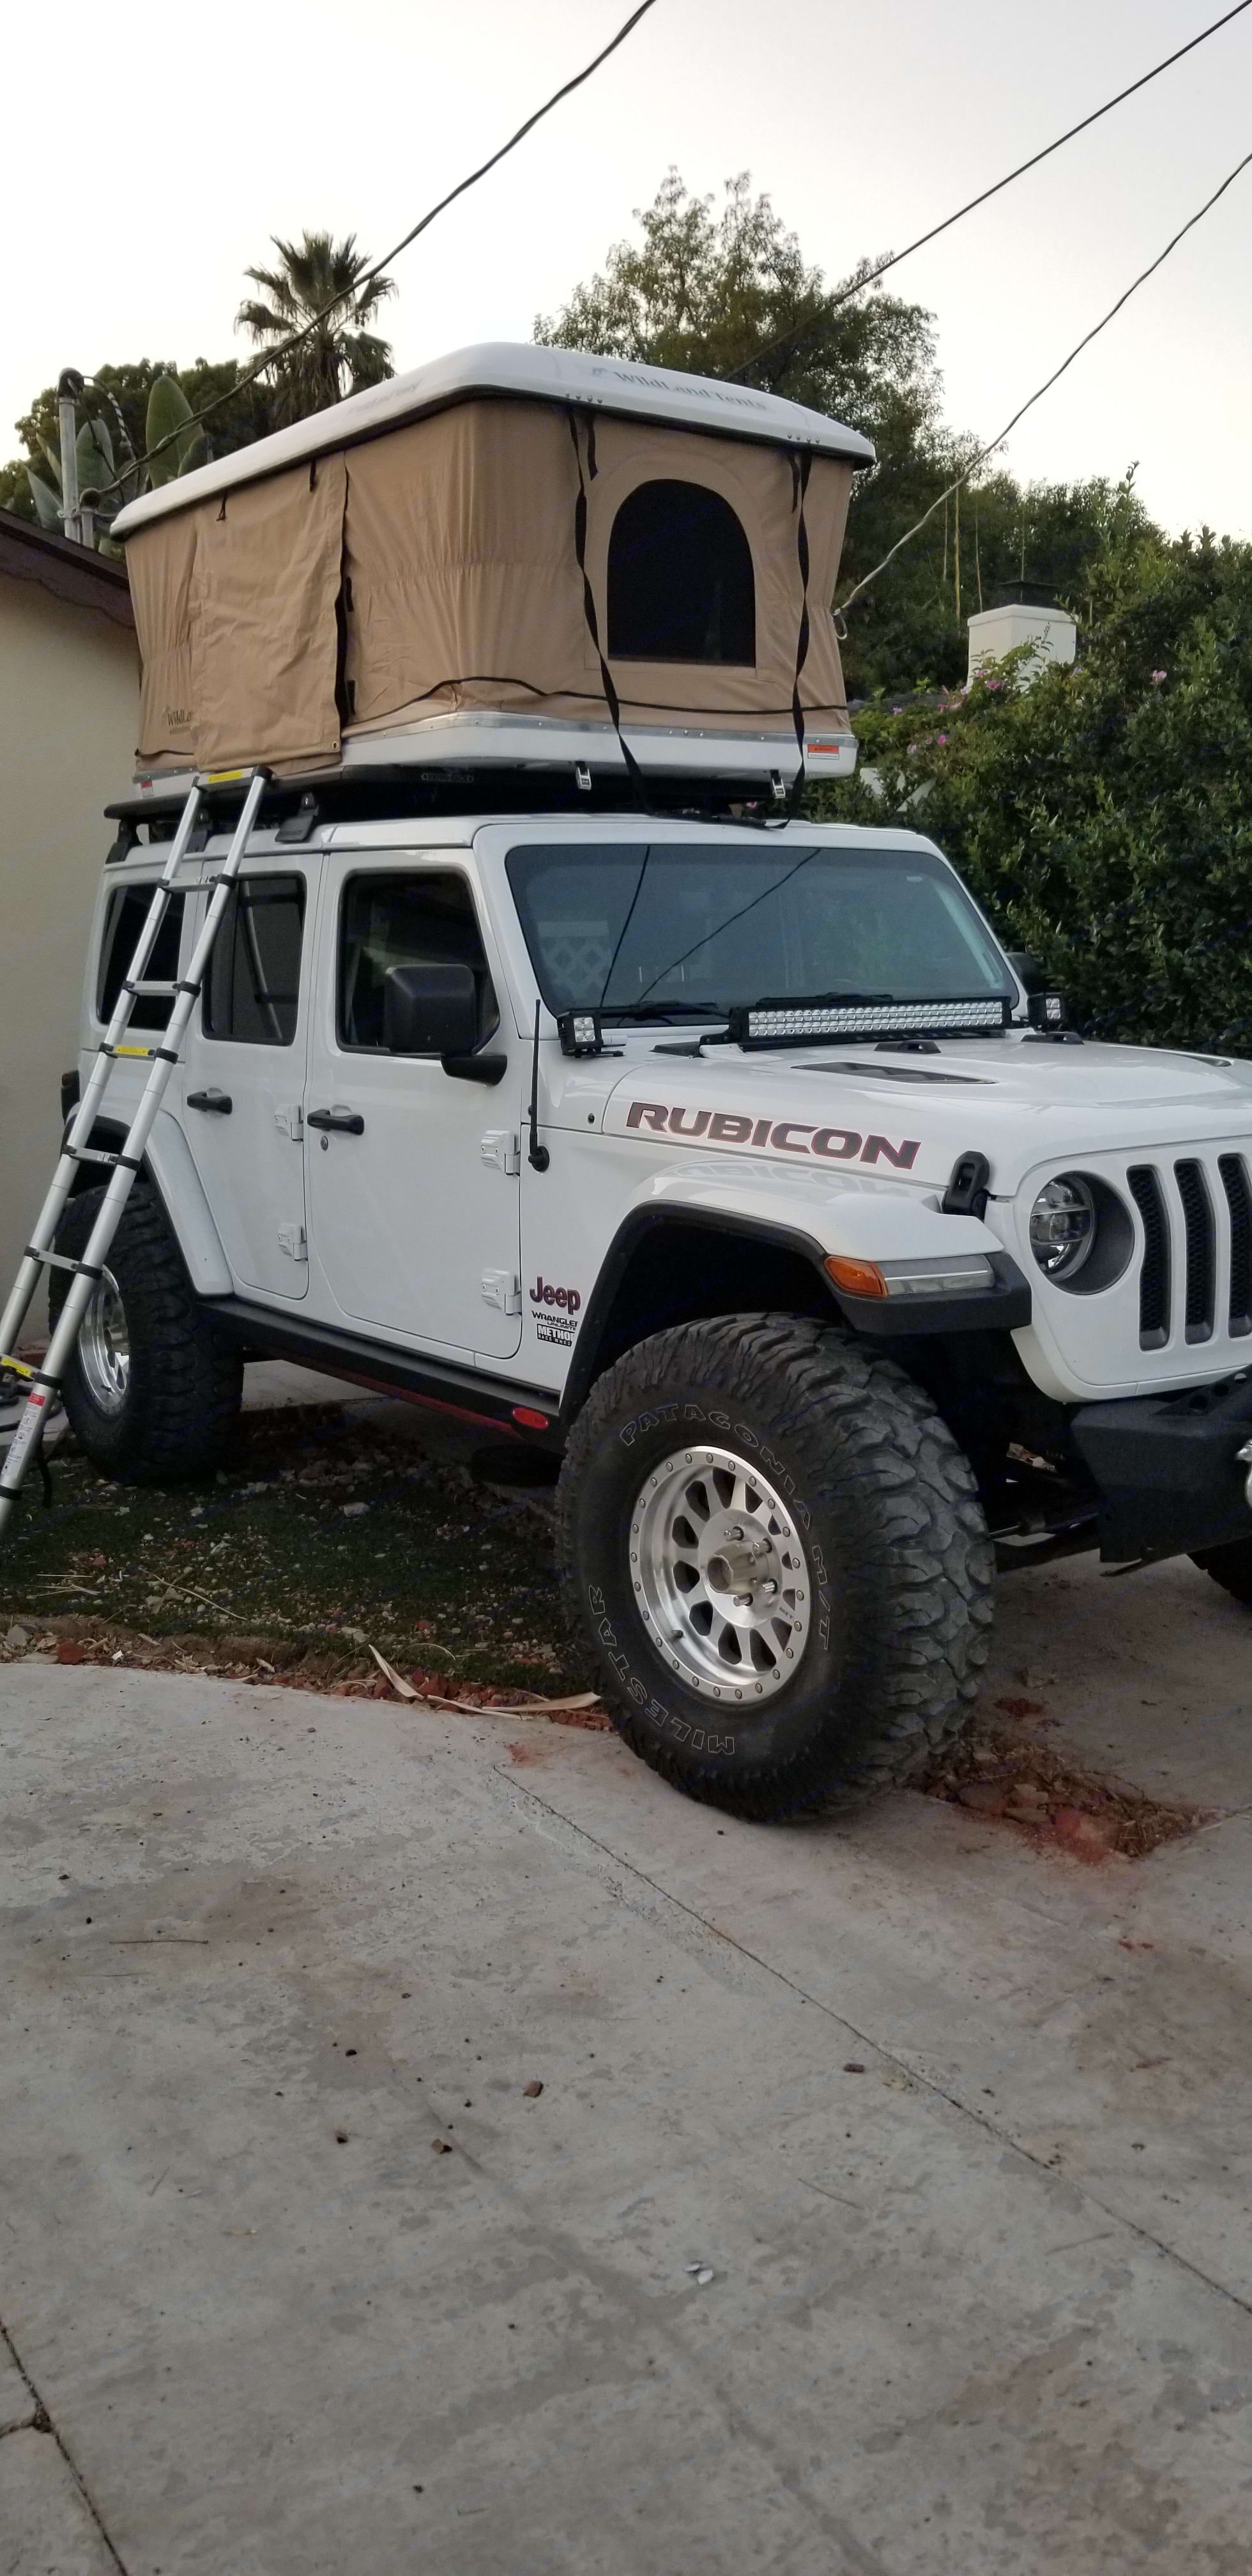 Jeep JL Rubicon with rooftop tent. . Jeep Wrangler JLU Rubicon 2018